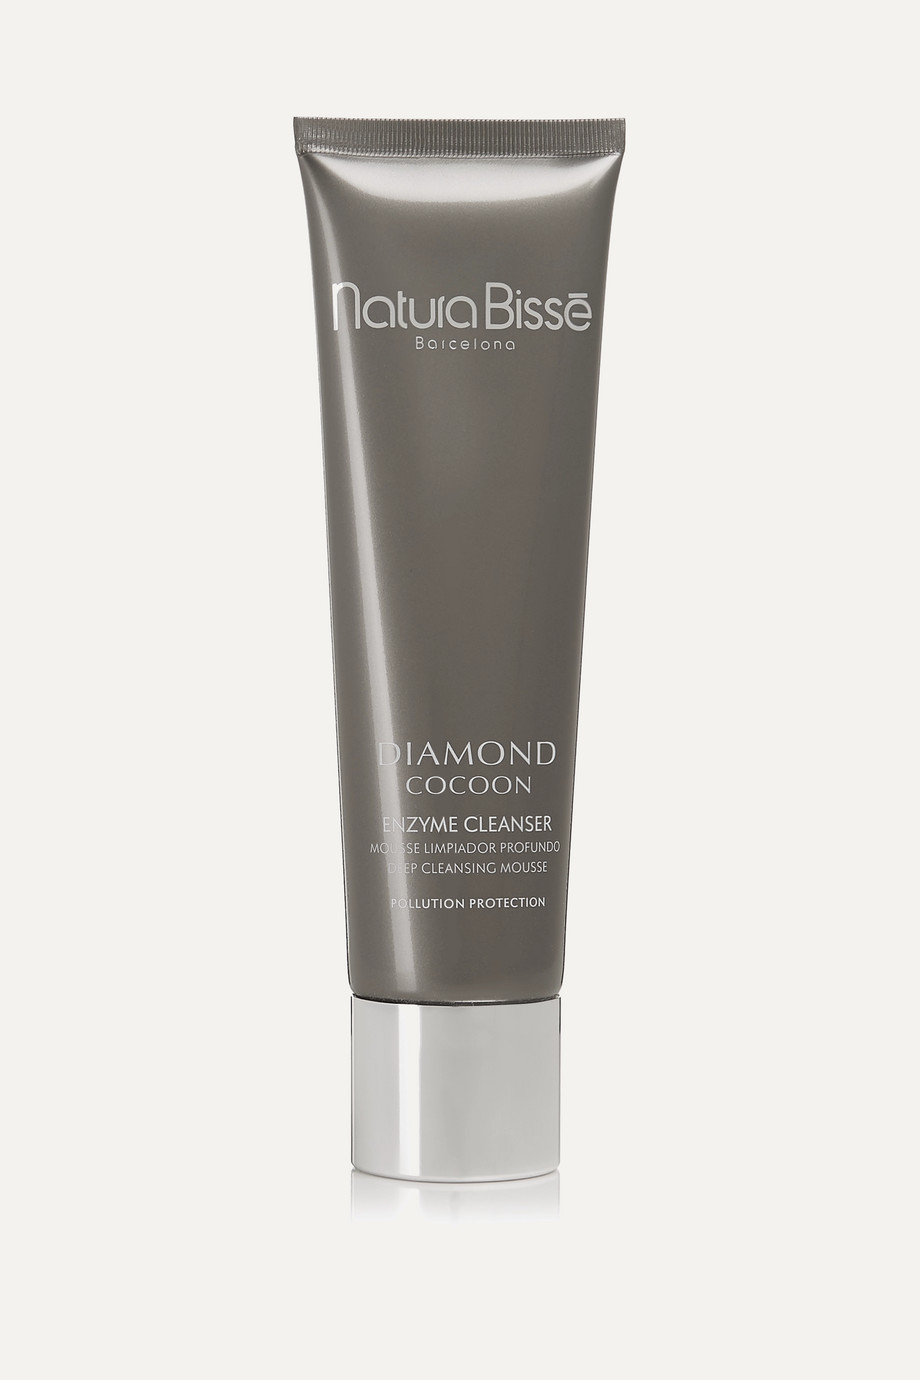 Natura Bissé Diamond Cocoon Enzyme Cleanser, 100 ml – Cleanser